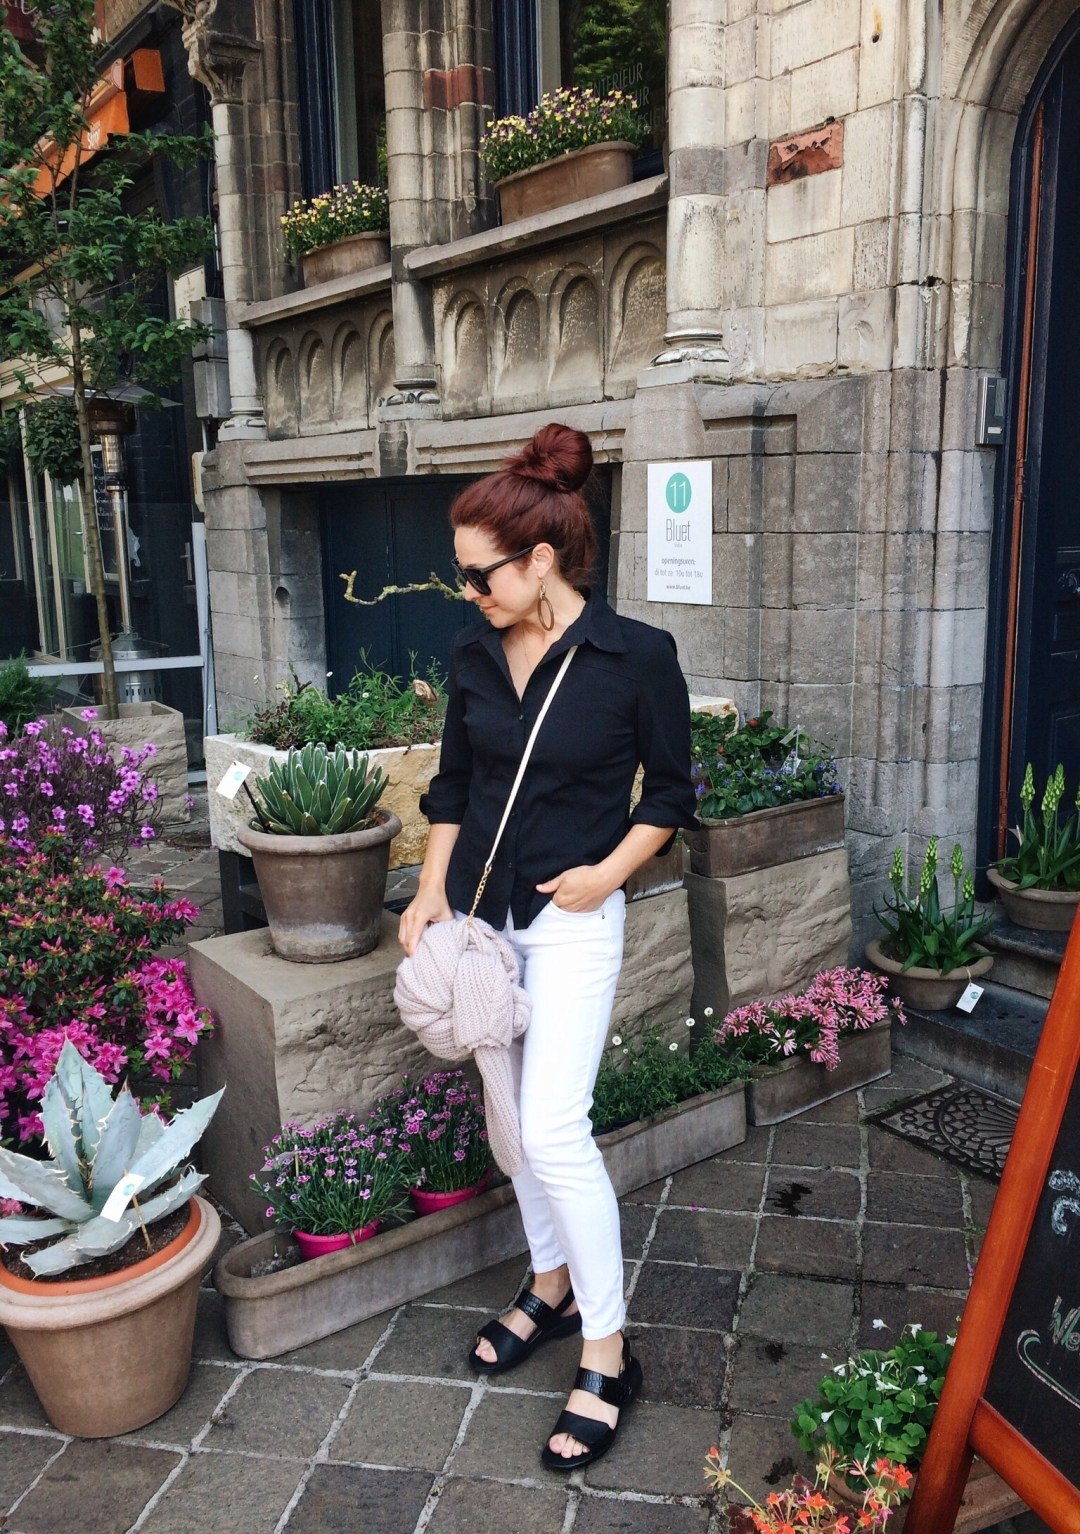 white jeans, black button up shirt outfits, cream cross-body, black sandals, revere shoes, cardigan, black sunglasses, Gent, floral stand